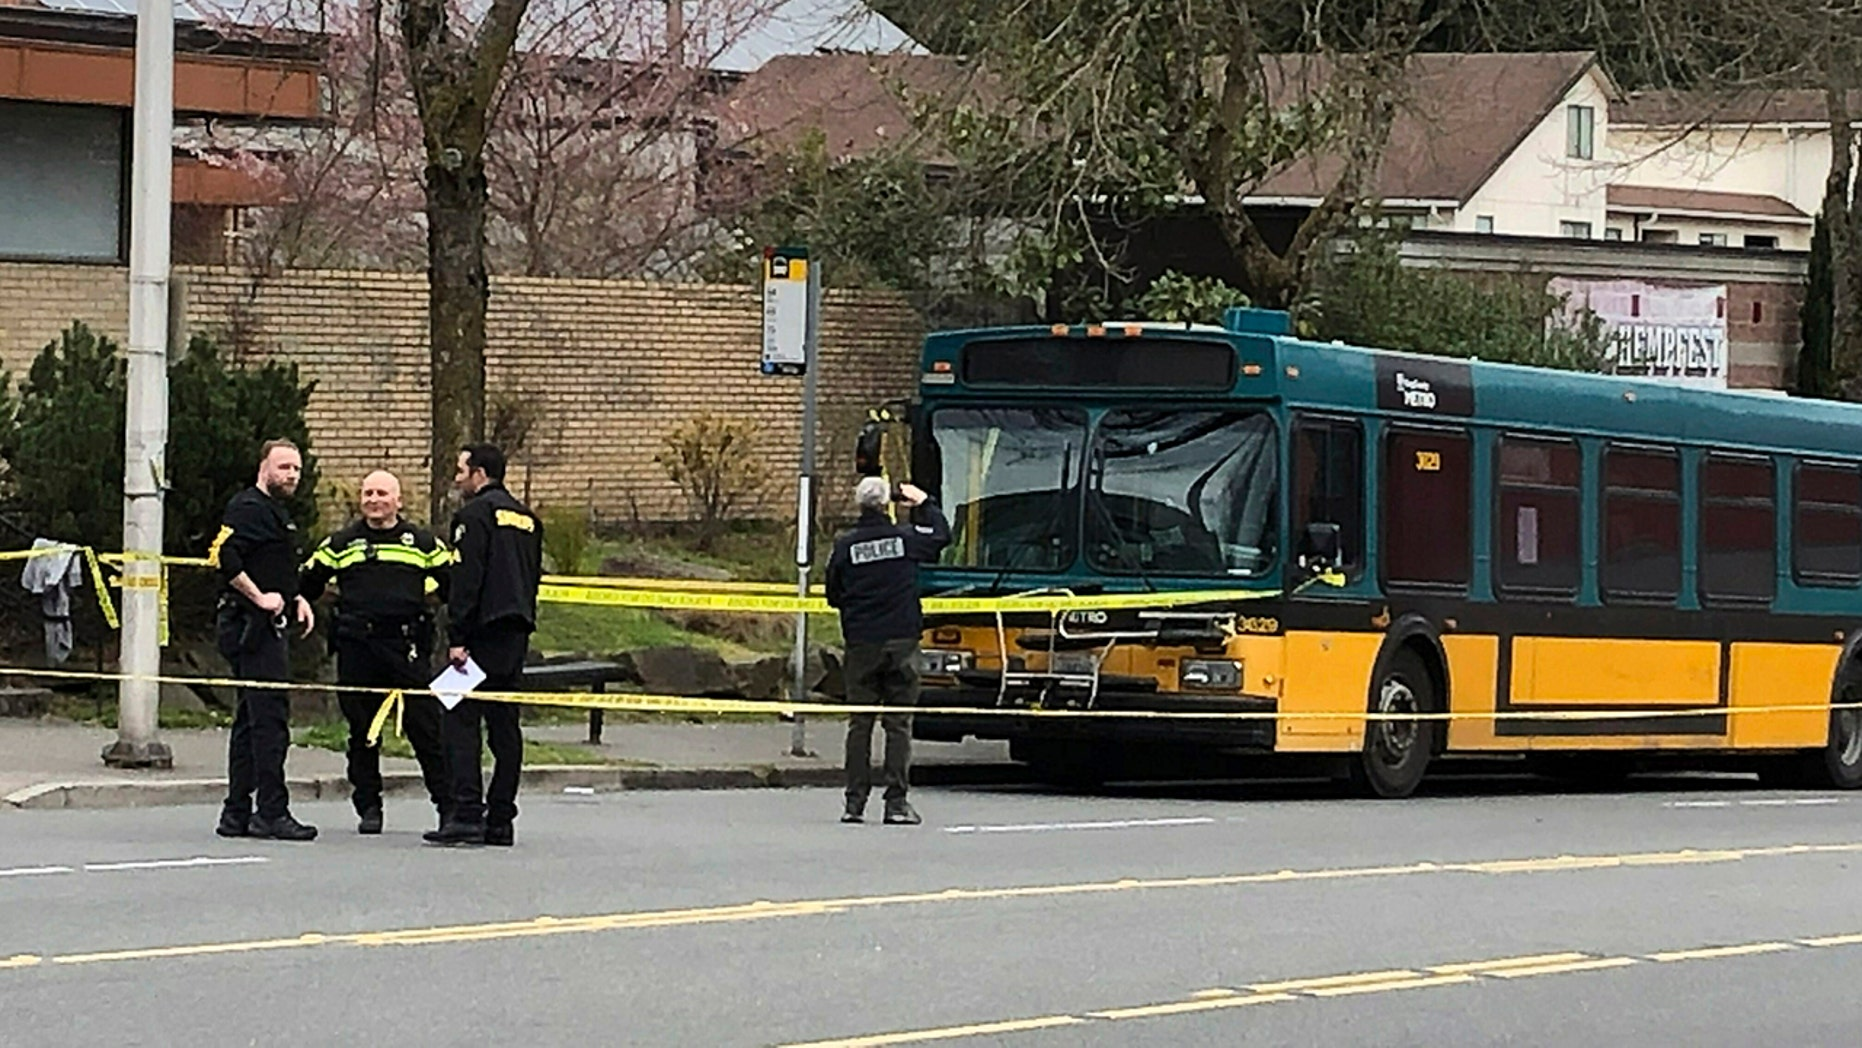 Investigators are working on the scene of a shooting in Seattle on Wednesday, March 27, 2019. (Associated Press)